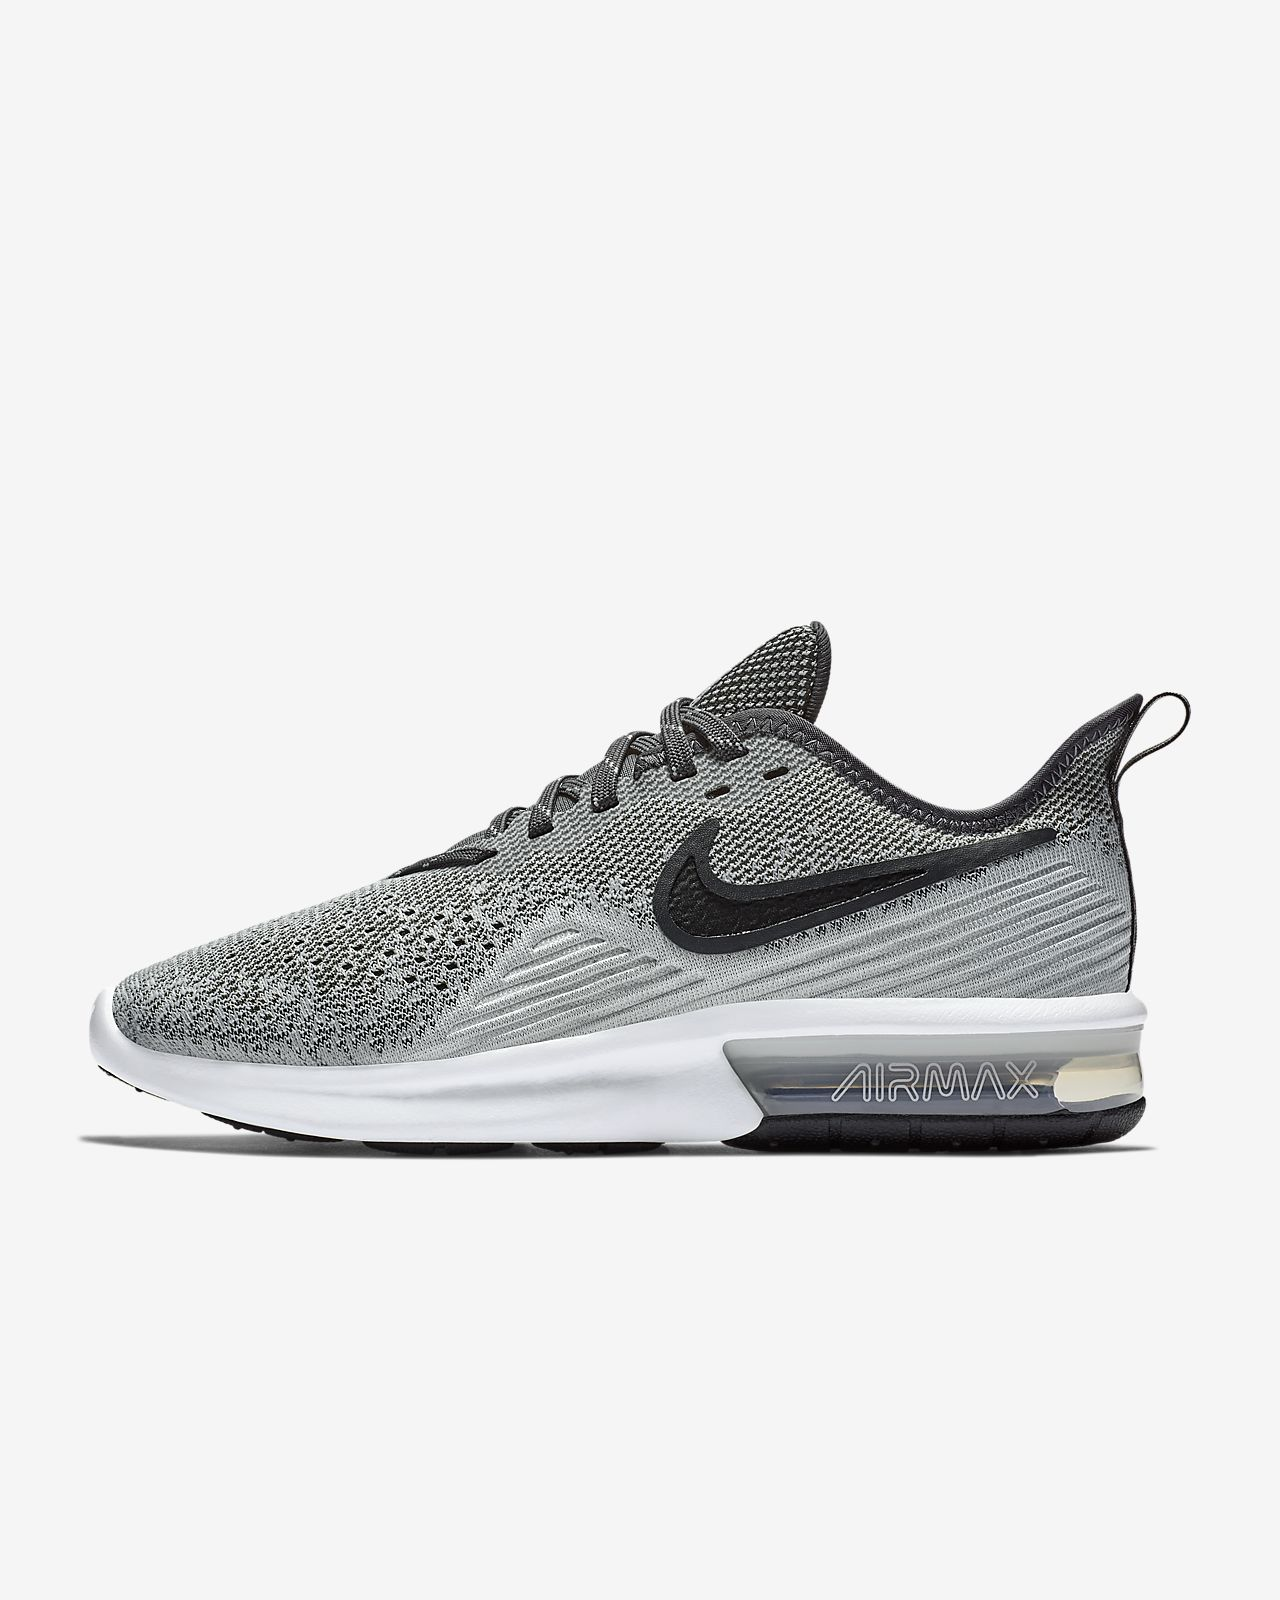 separation shoes 857d0 858ec ... Chaussure Nike Air Max Sequent 4 pour Femme